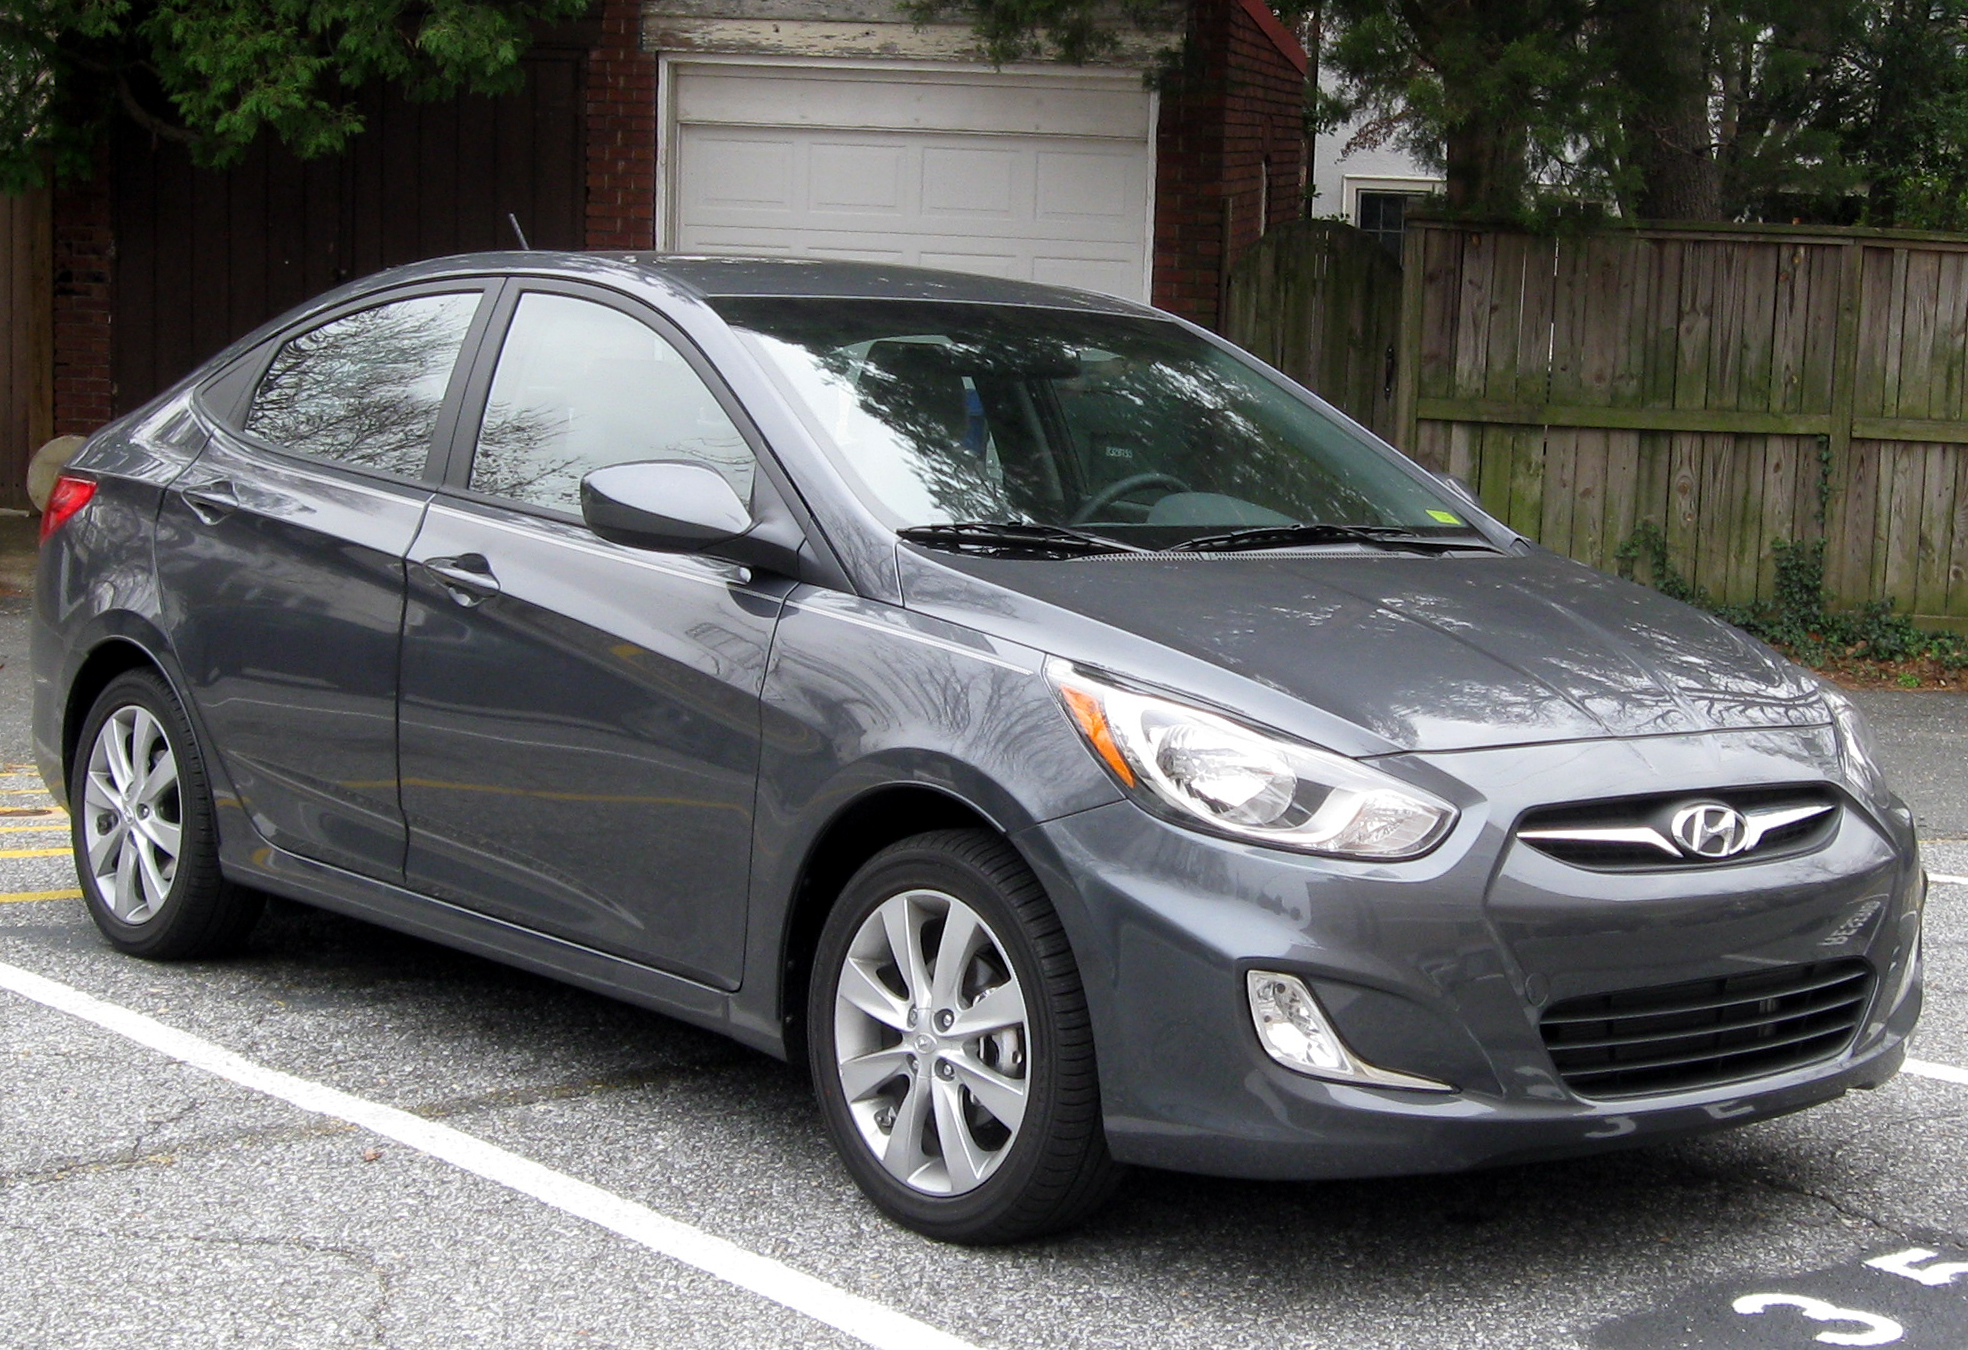 File 2012 Hyundai Accent Gls Sedan 12 14 2011 Jpg Wikimedia Commons